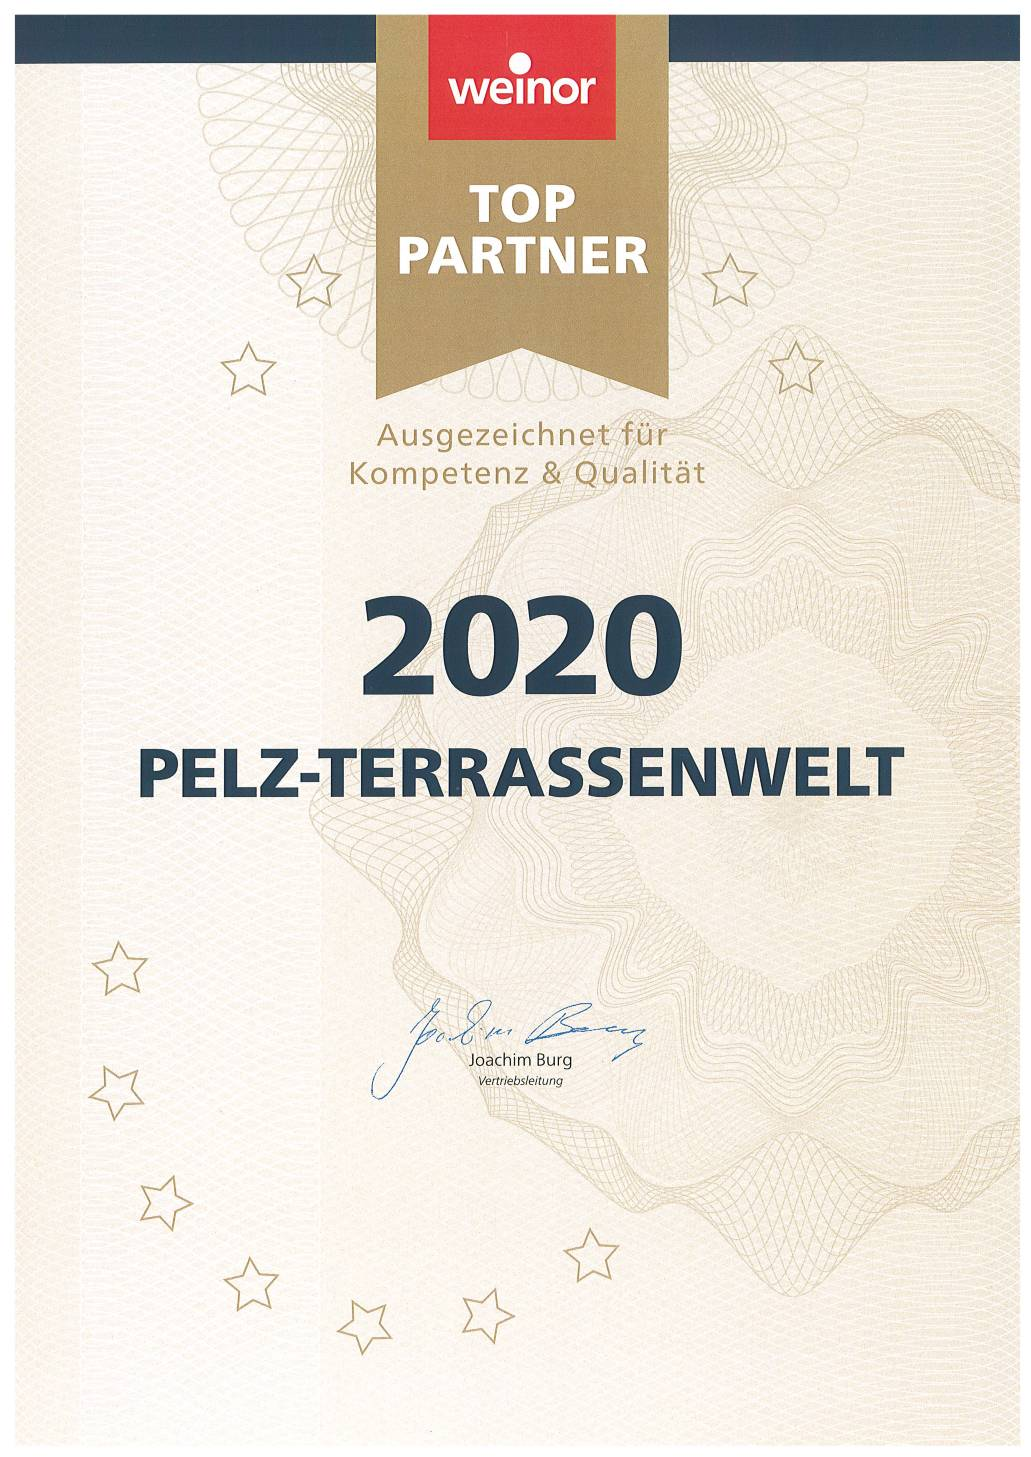 weinor Top-Partner | seit 2007